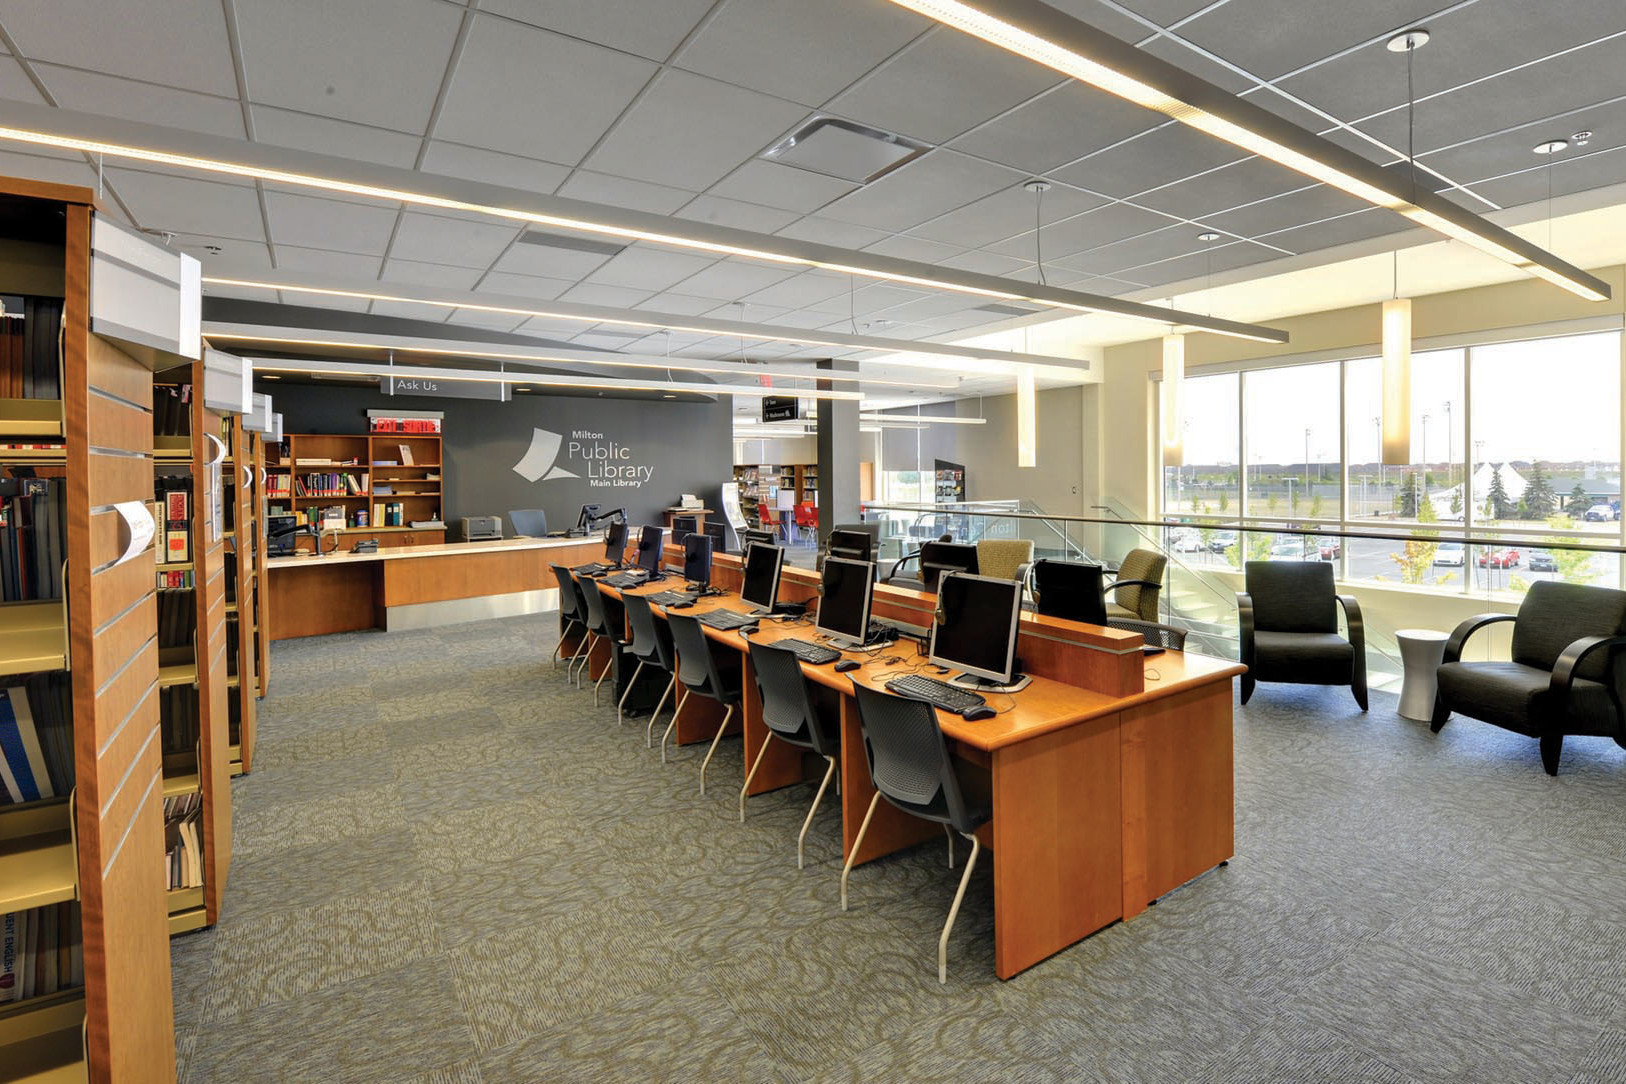 Resource centre with computer work stations, lounge seating, wood bookshelves and white pendant lighting